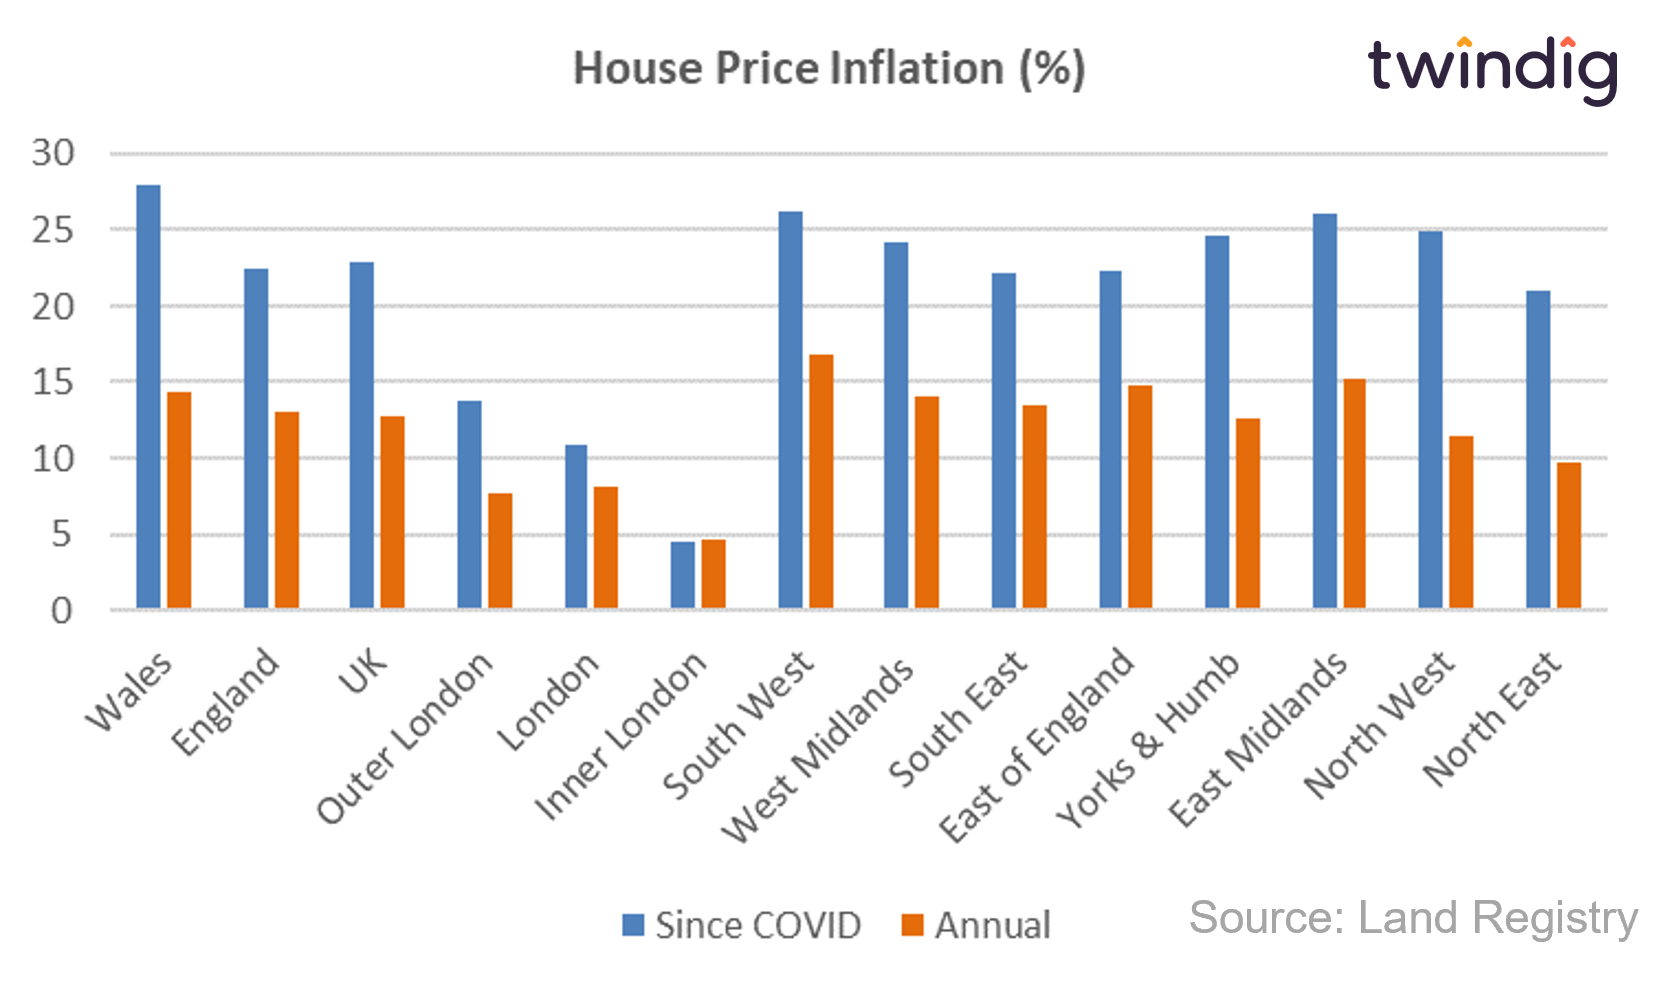 House price inflation graph showing annual house price inflation and house price inflation since the start of the COVID pandemic